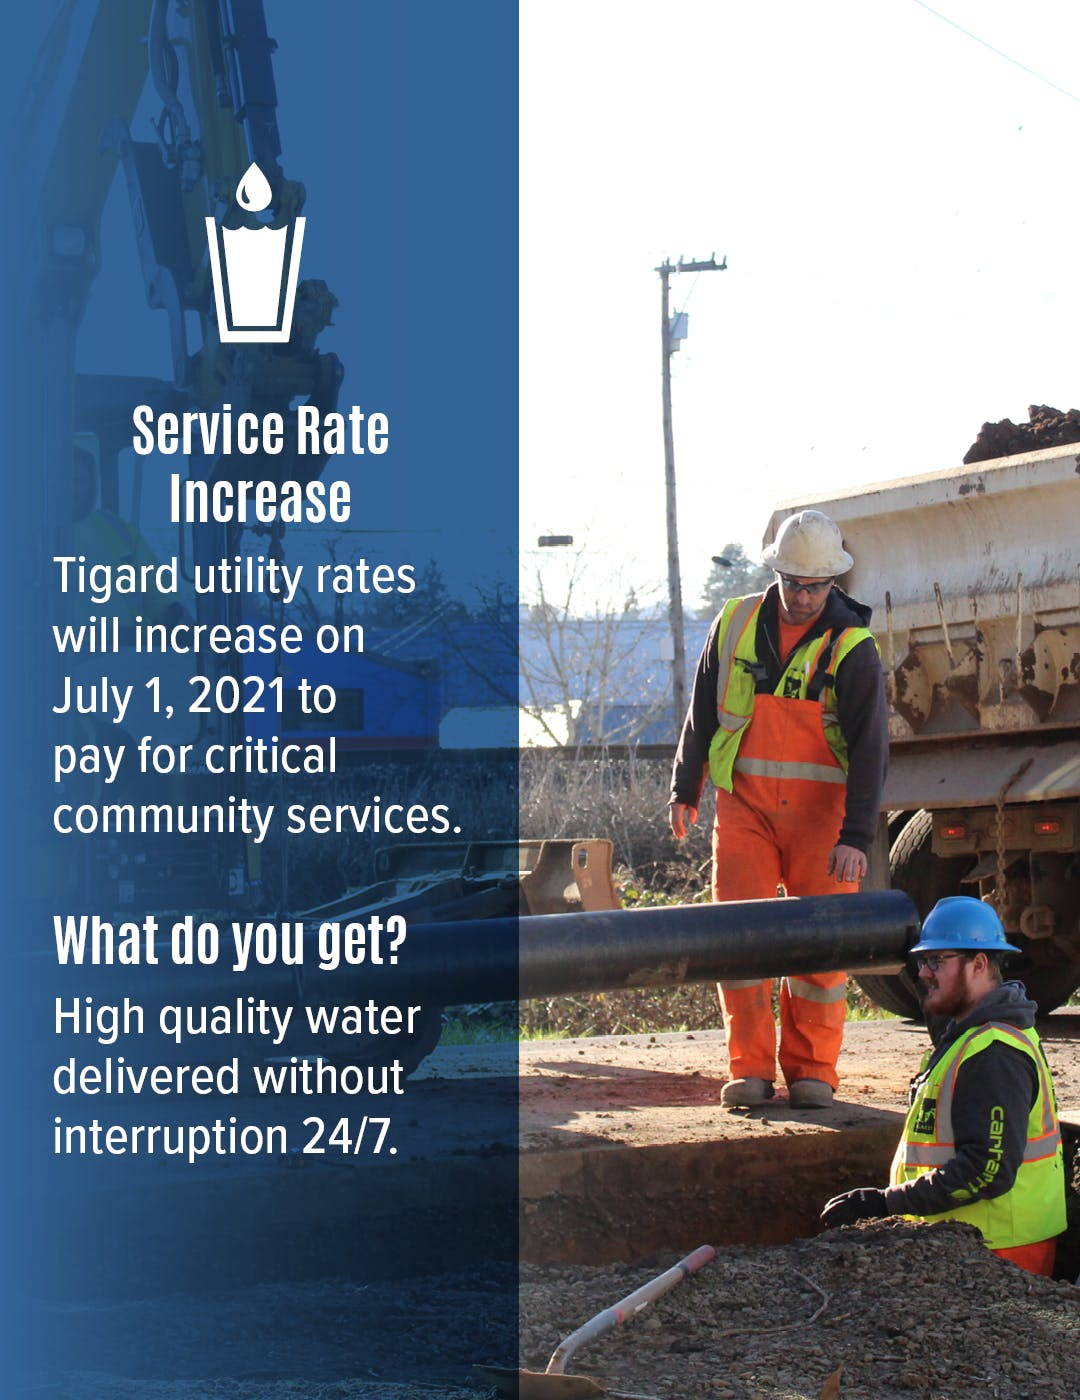 Services_Rate_Increase_Water_July2021_shared_social_1080x1400.png